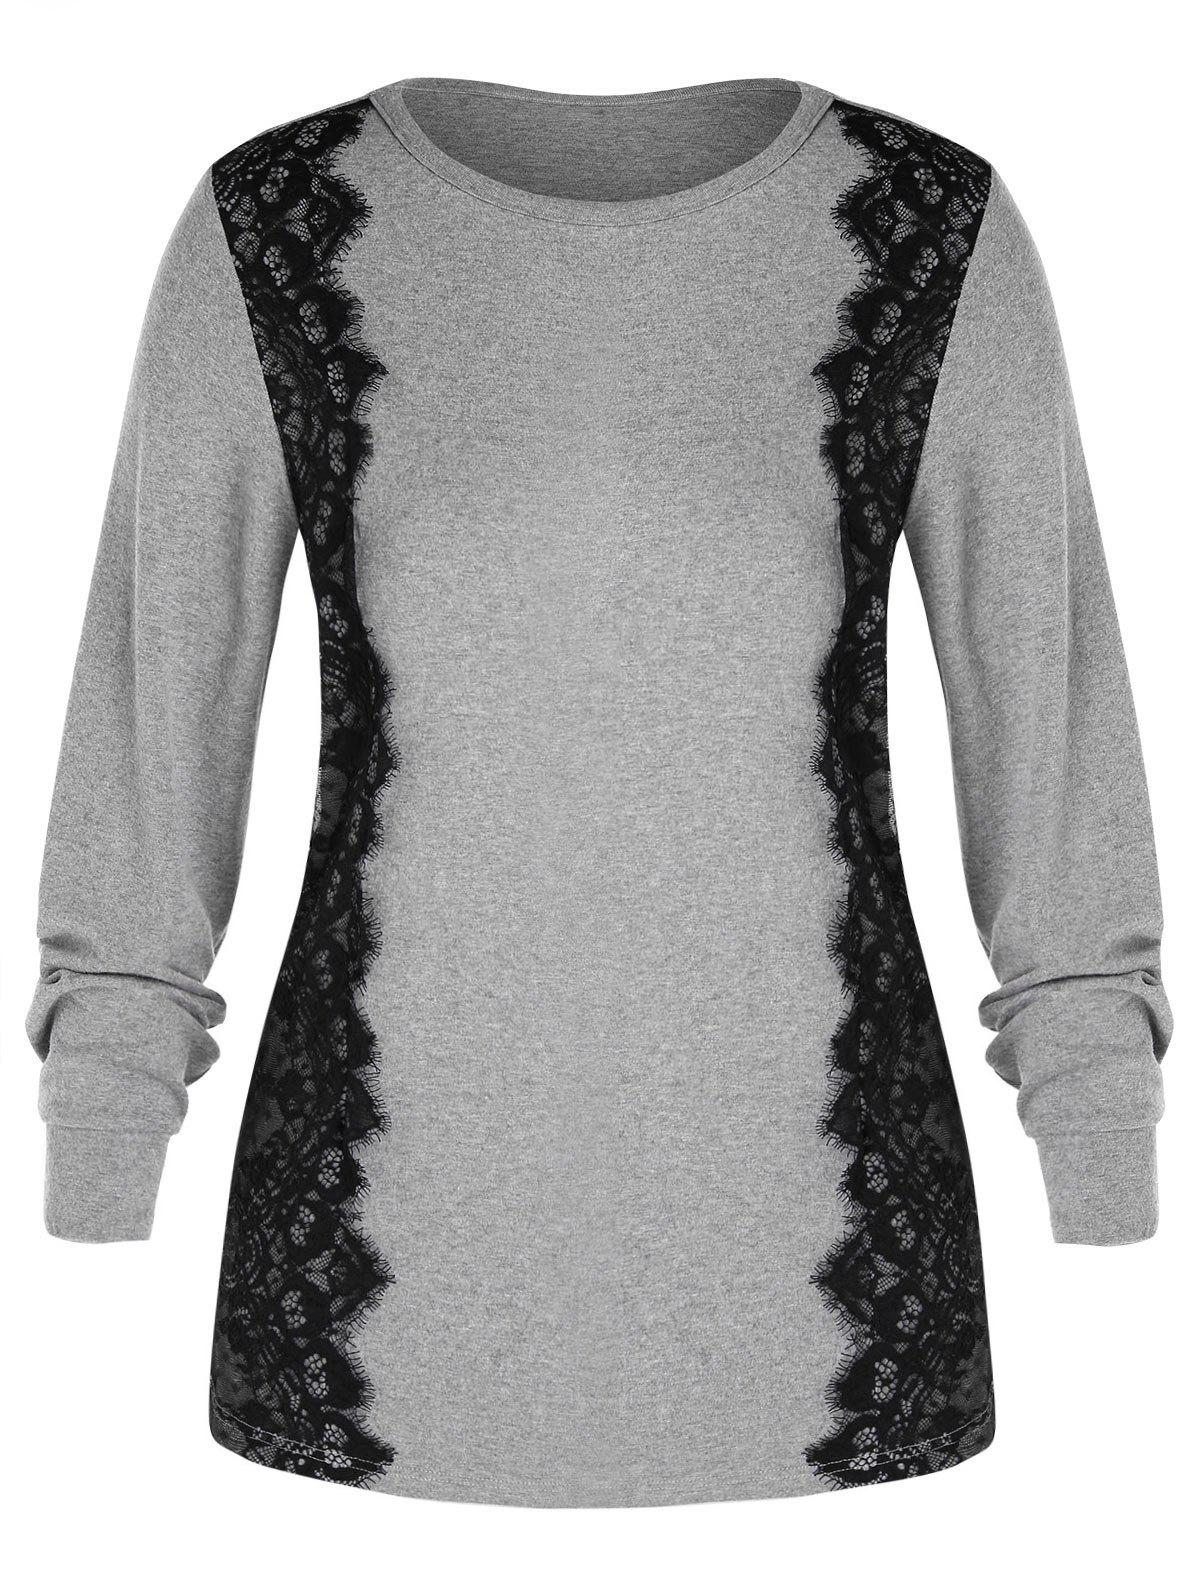 Plus Size Long Sleeve Lace Trim T-shirt